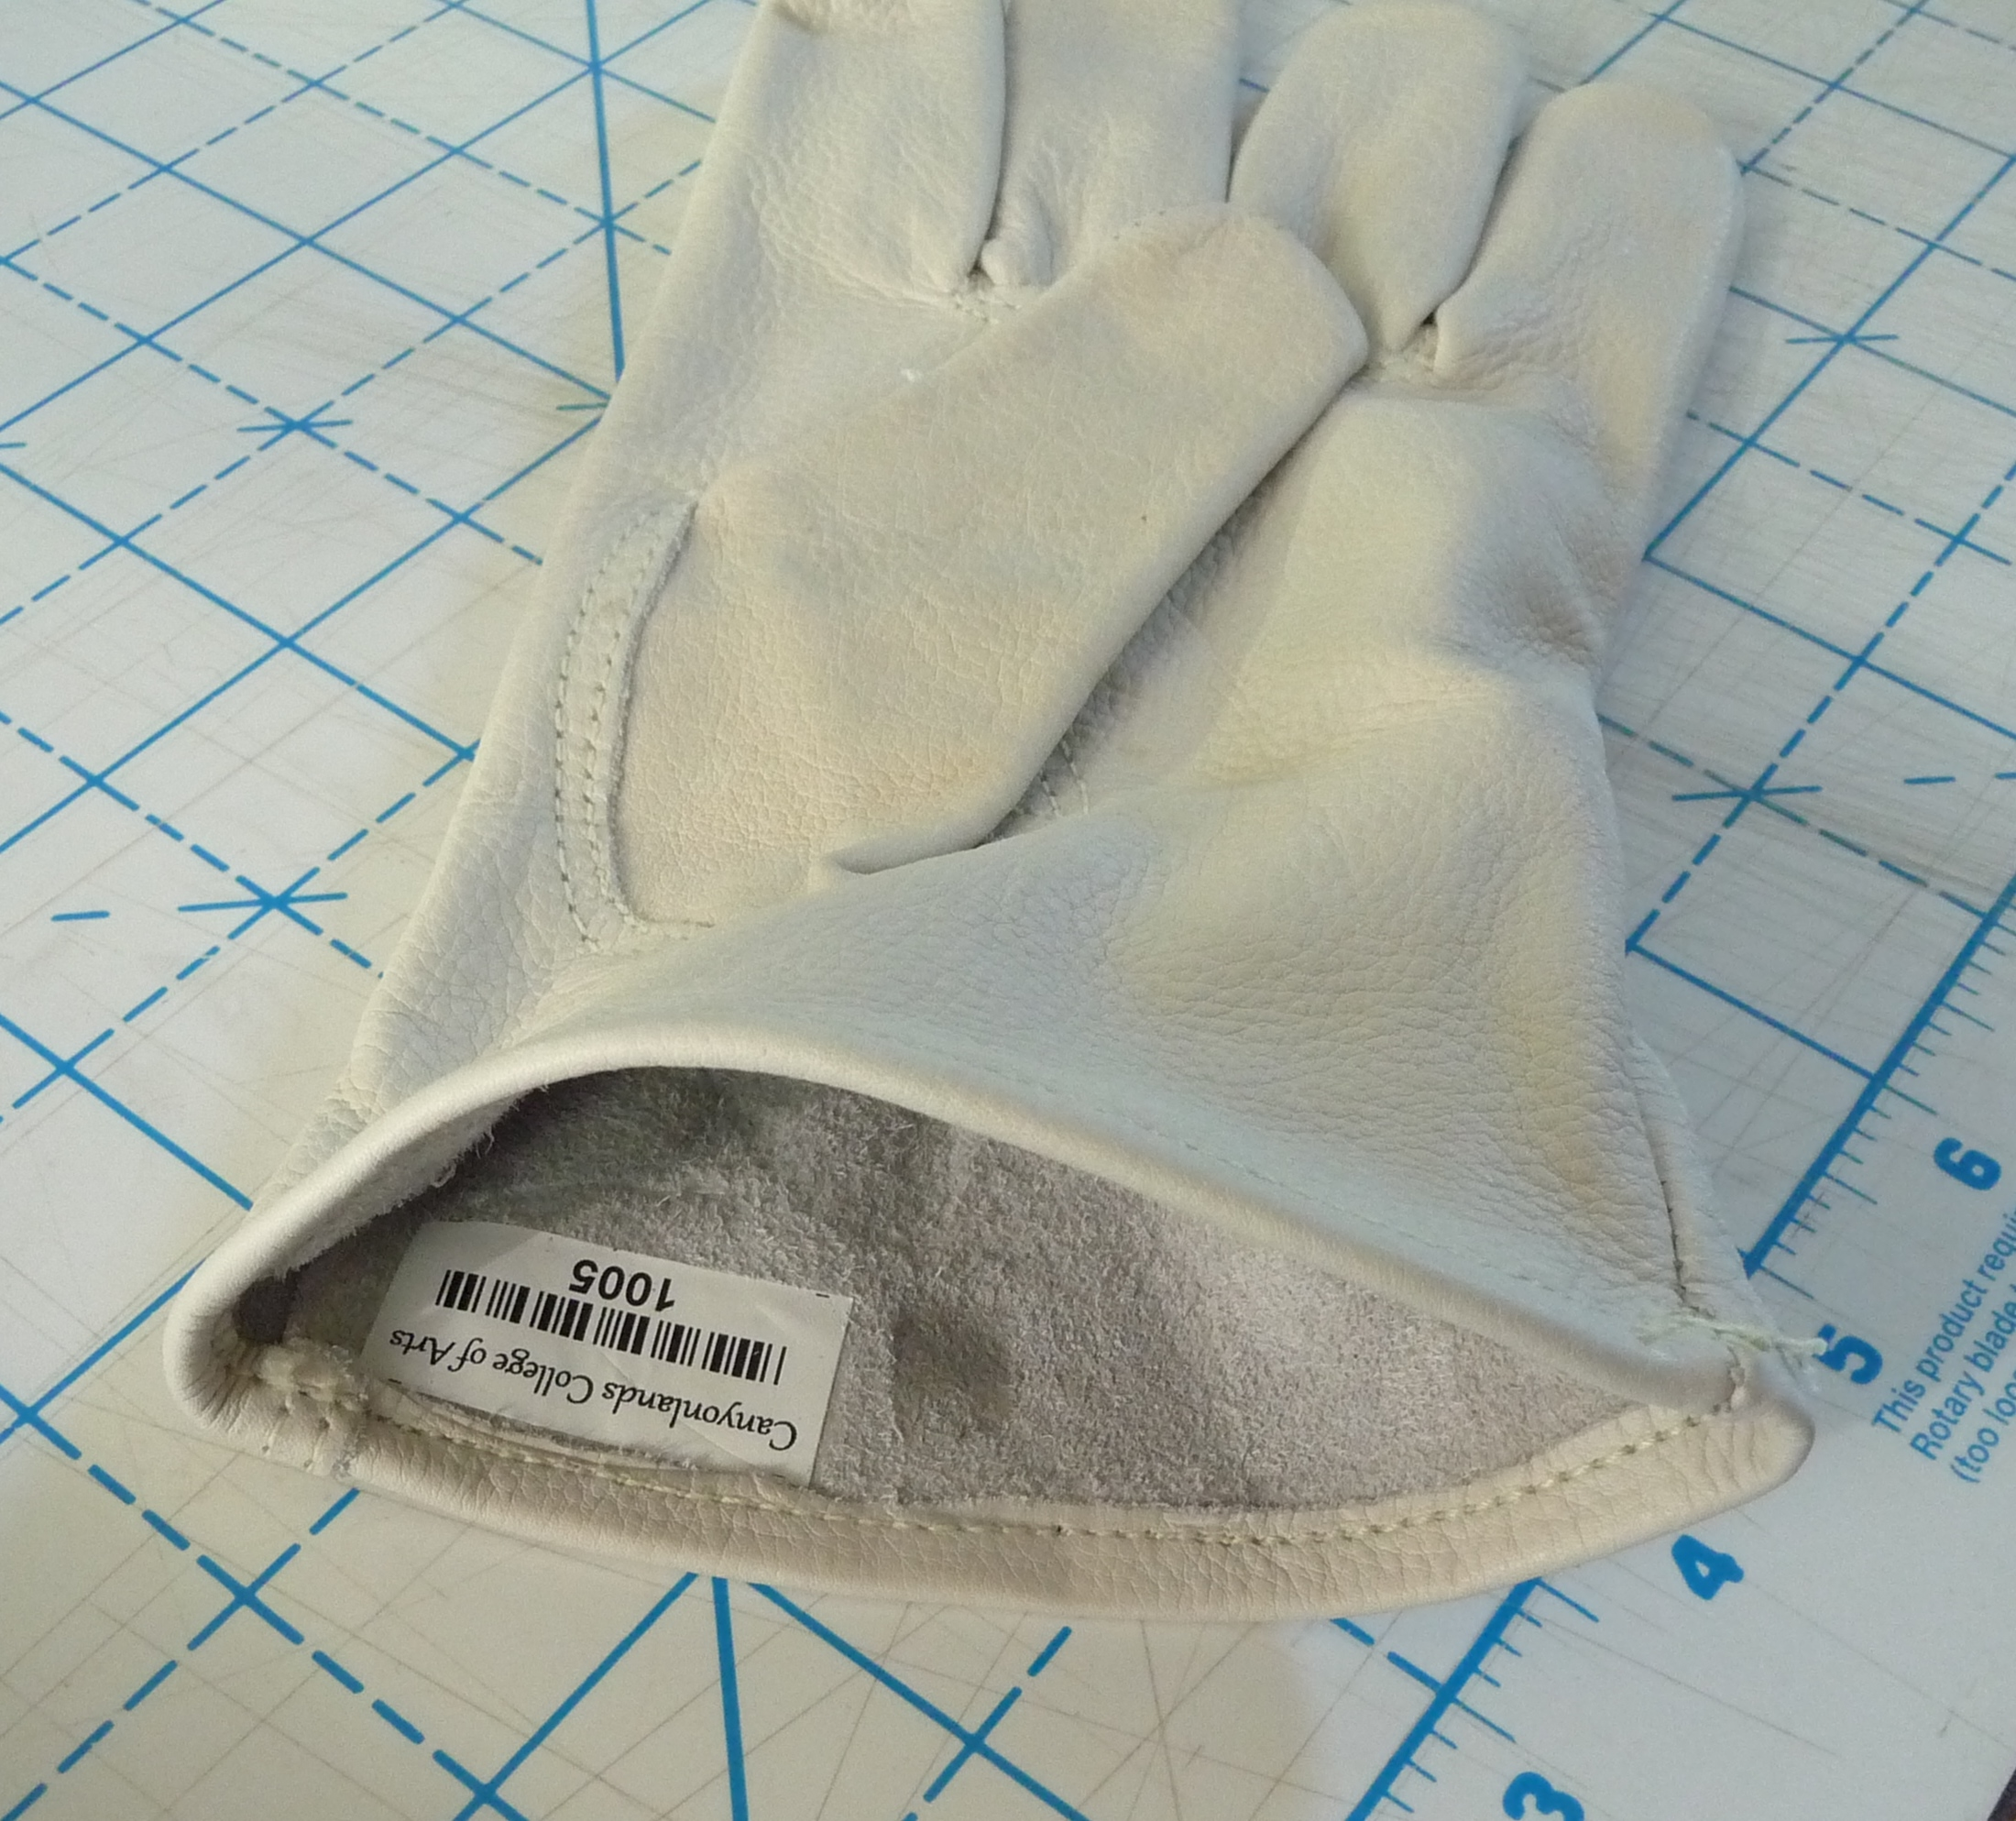 Leather Glove with Iron-on tag